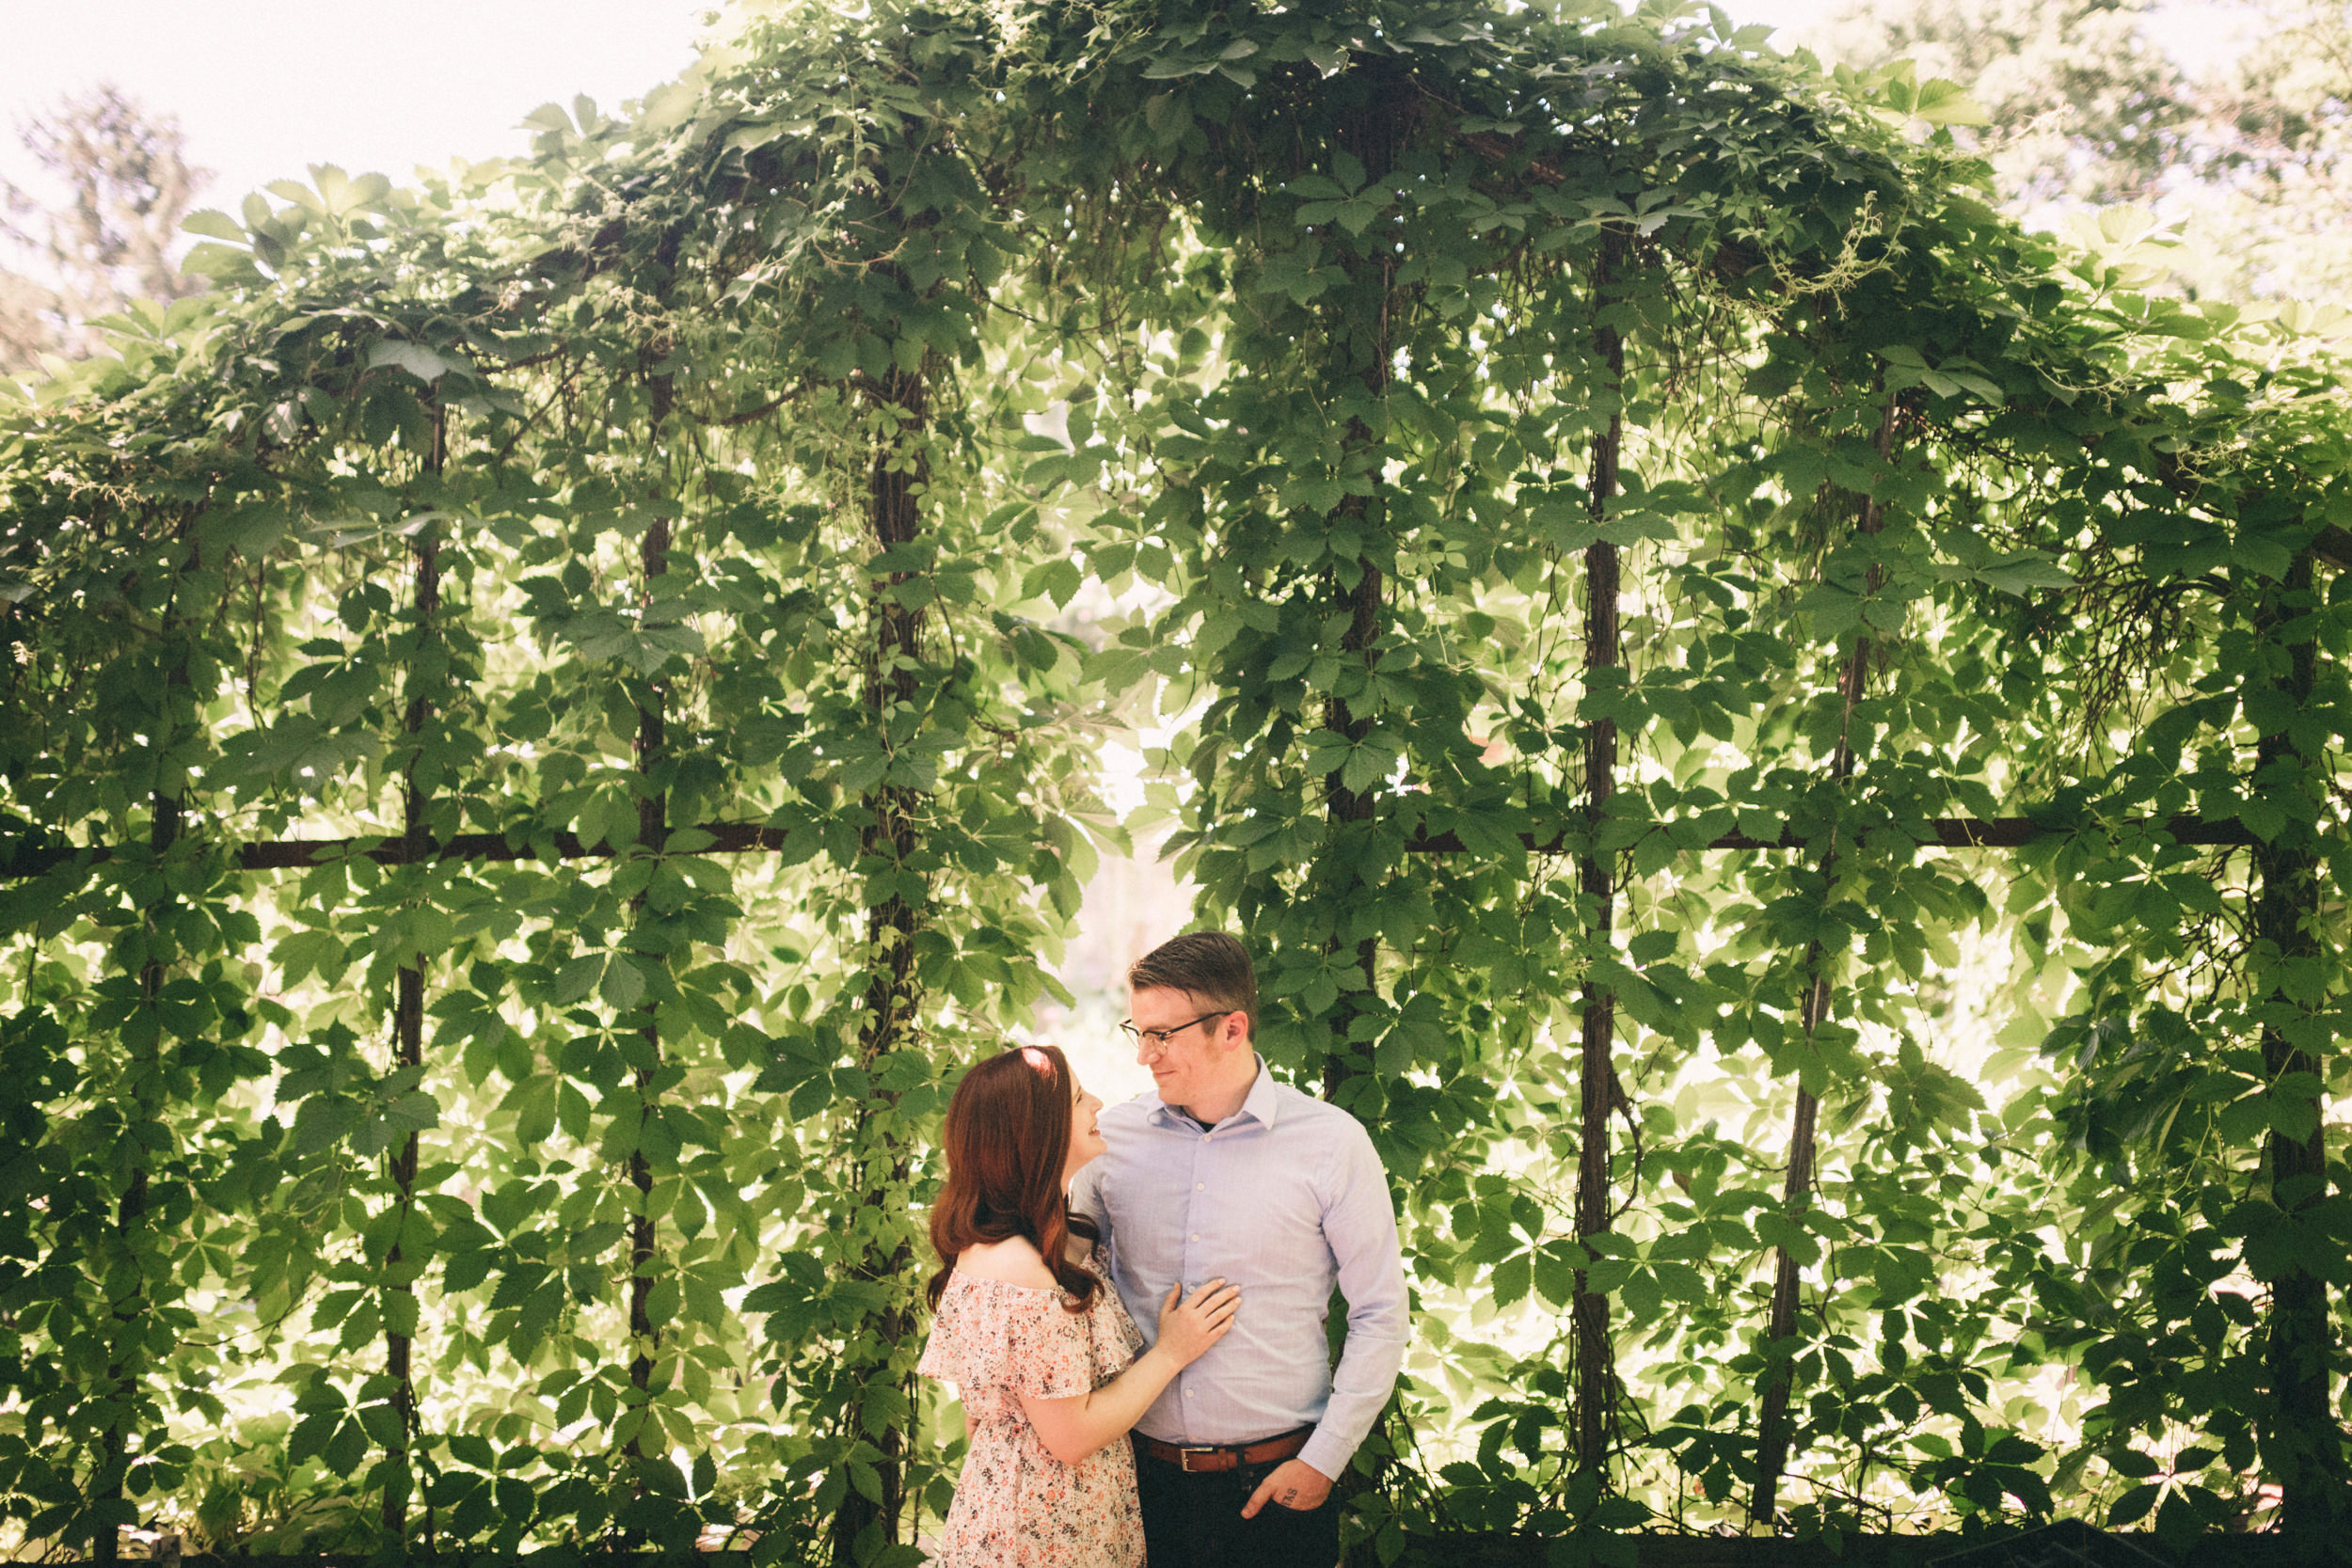 stephanie-brandon-sarah-katherine-davis-photographer-greenhouse-engagement-session-kentucky-65.jpg